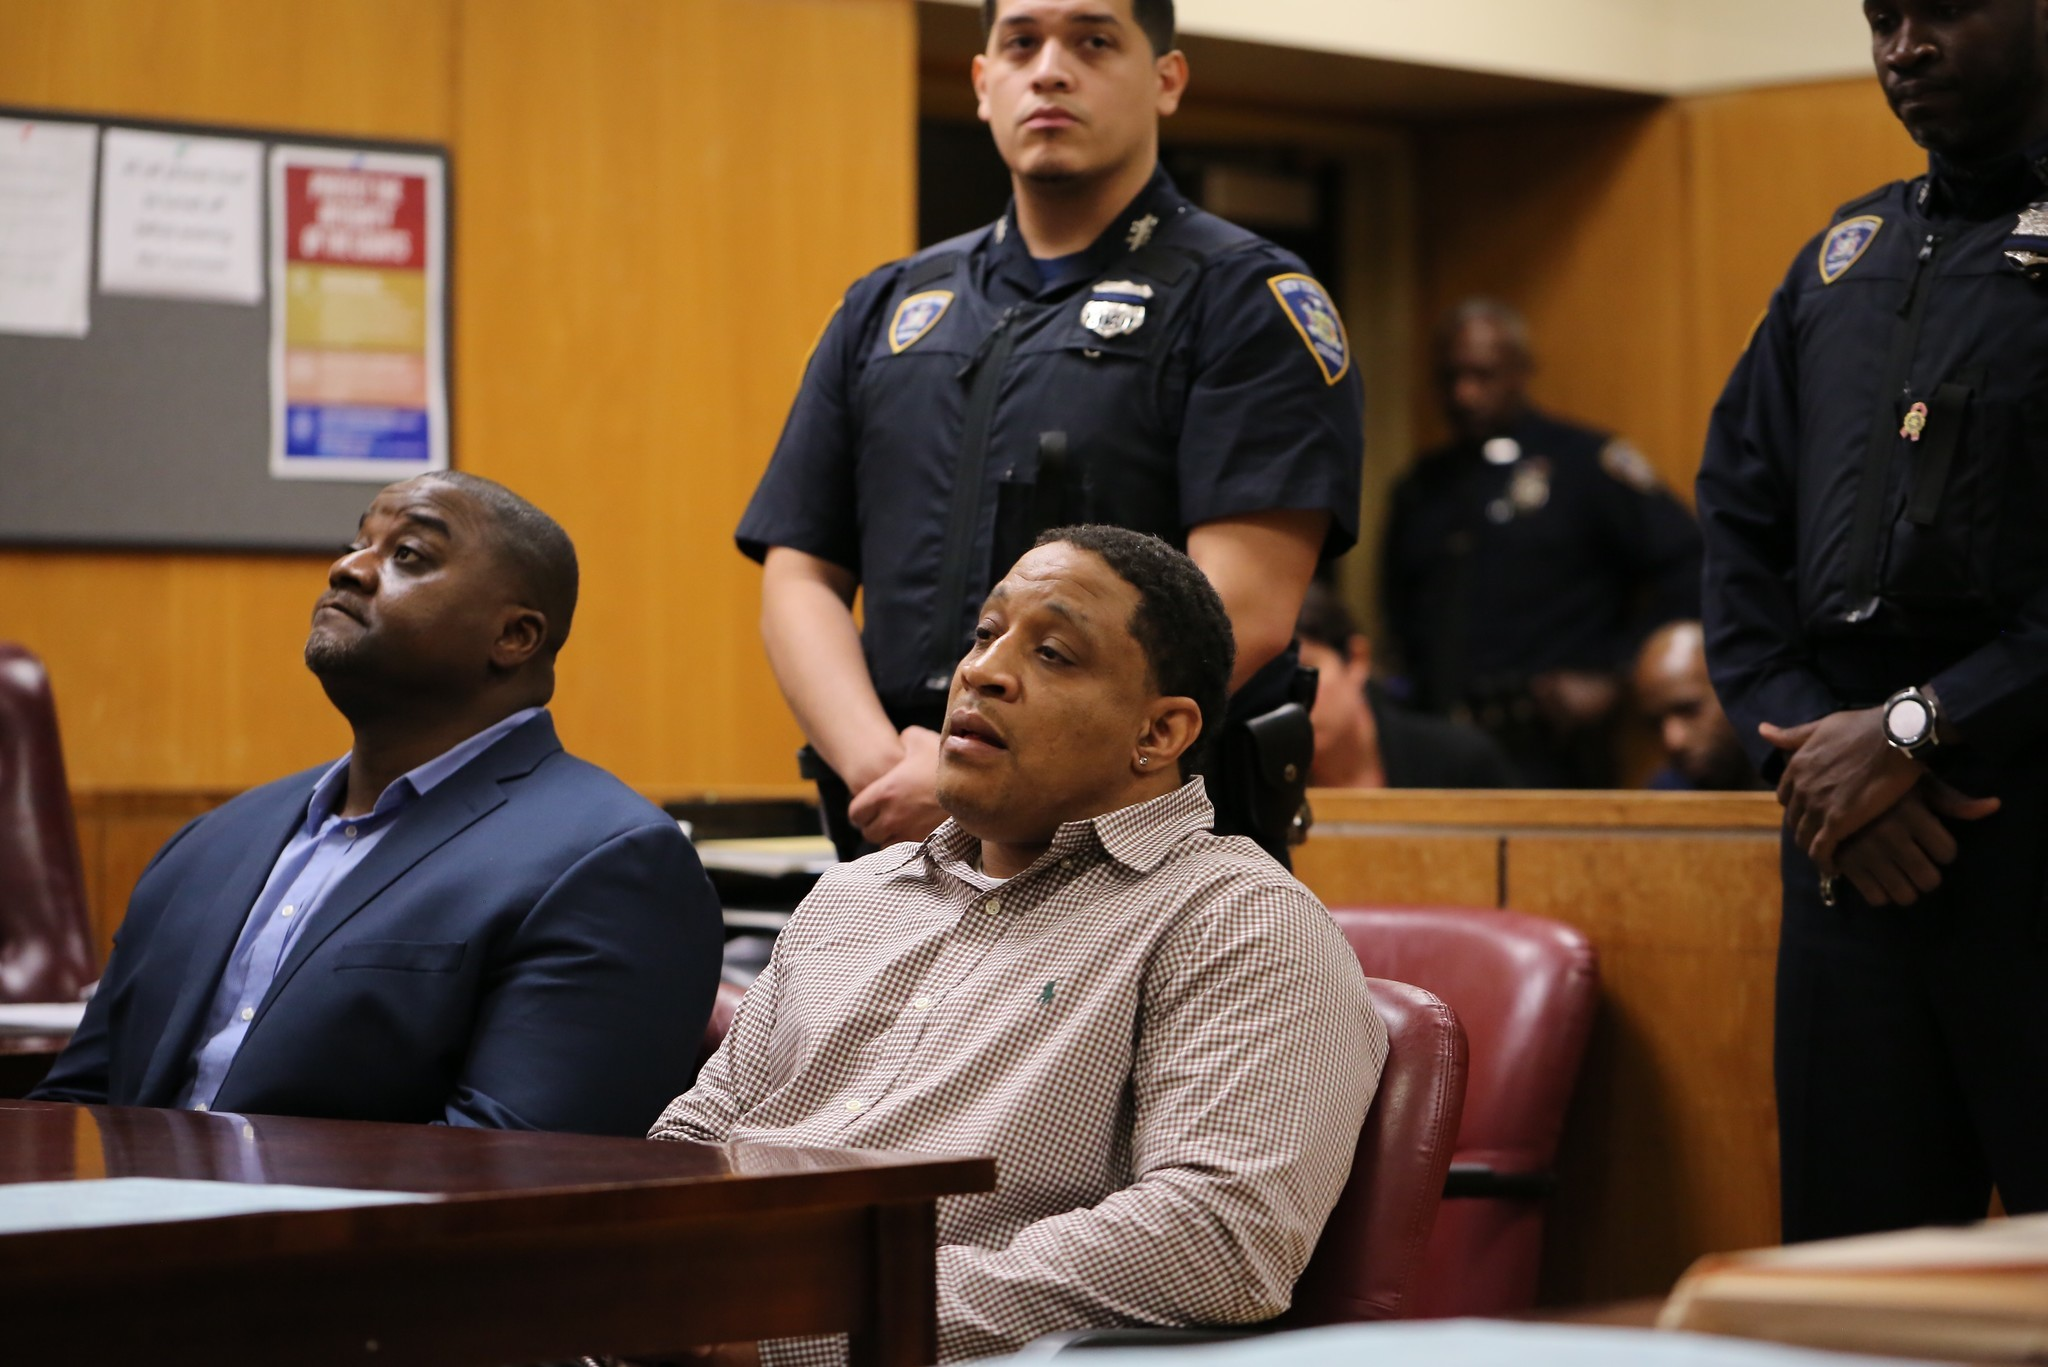 Crushed by judge's refusal to lift their convictions, two men will press appeals in 1987 slaying of French tourist in Times Square